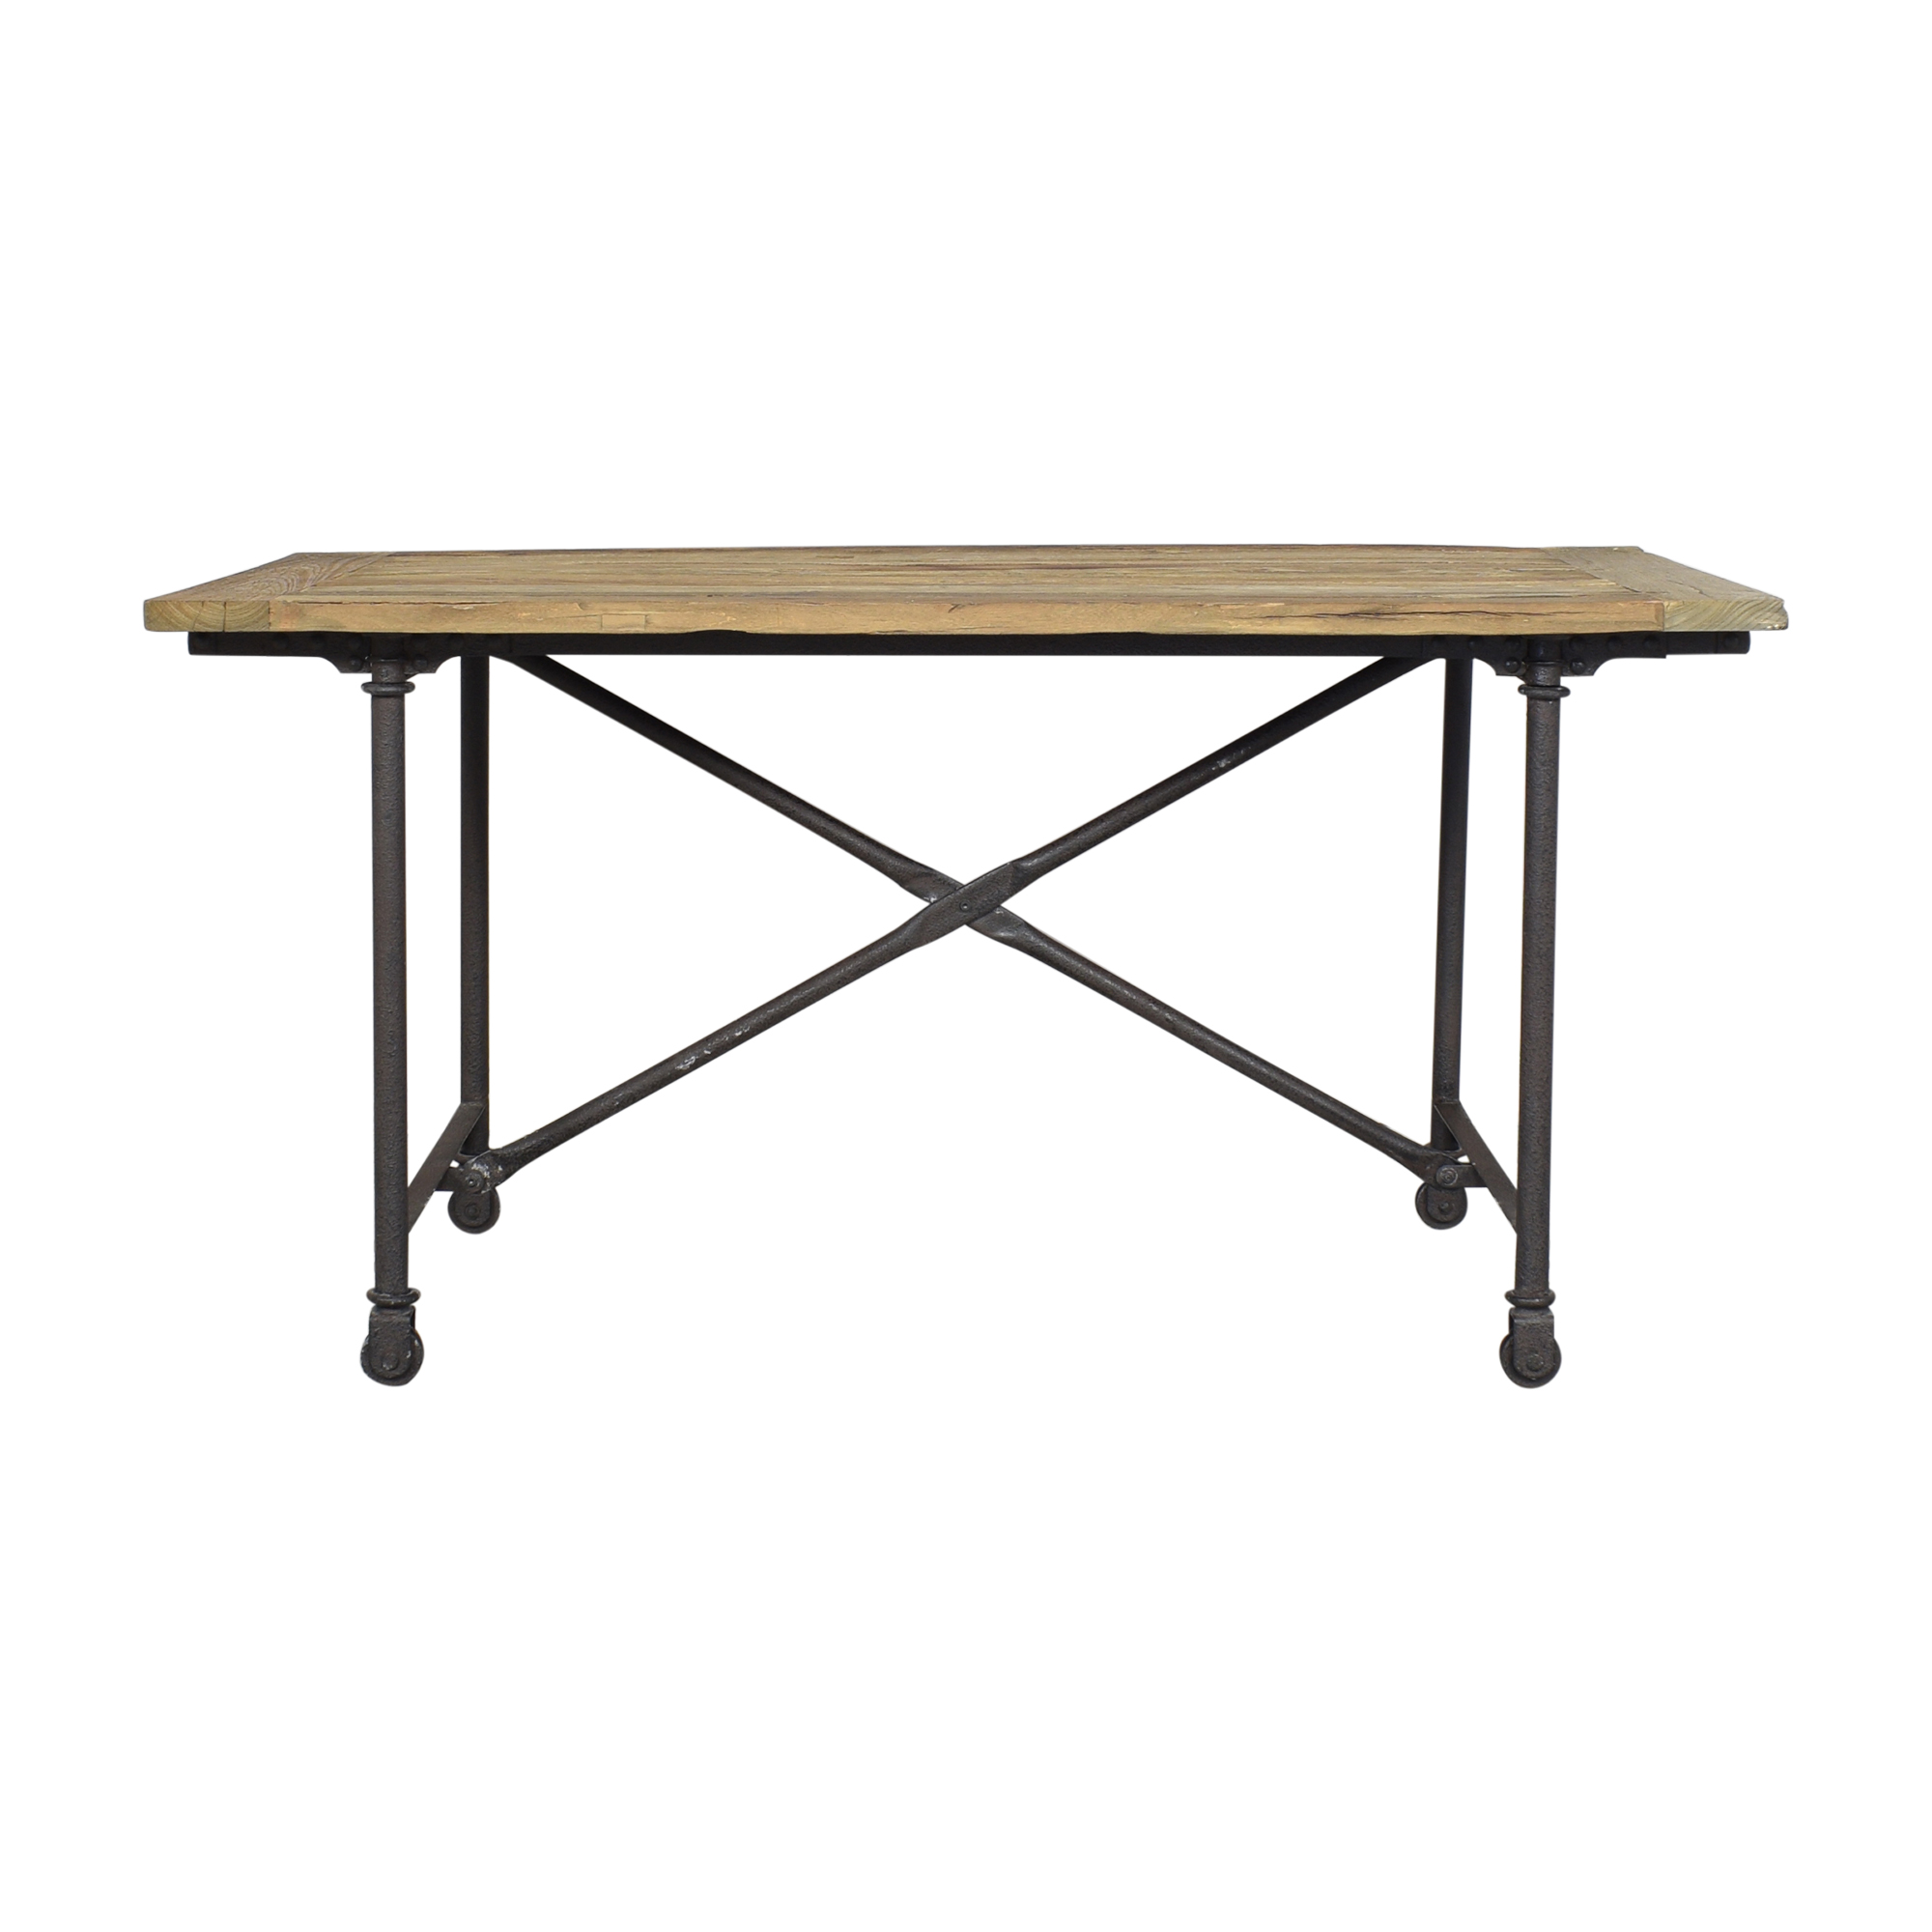 Restoration Hardware Restoration Hardware Flatiron Rectangular Dining Table ct